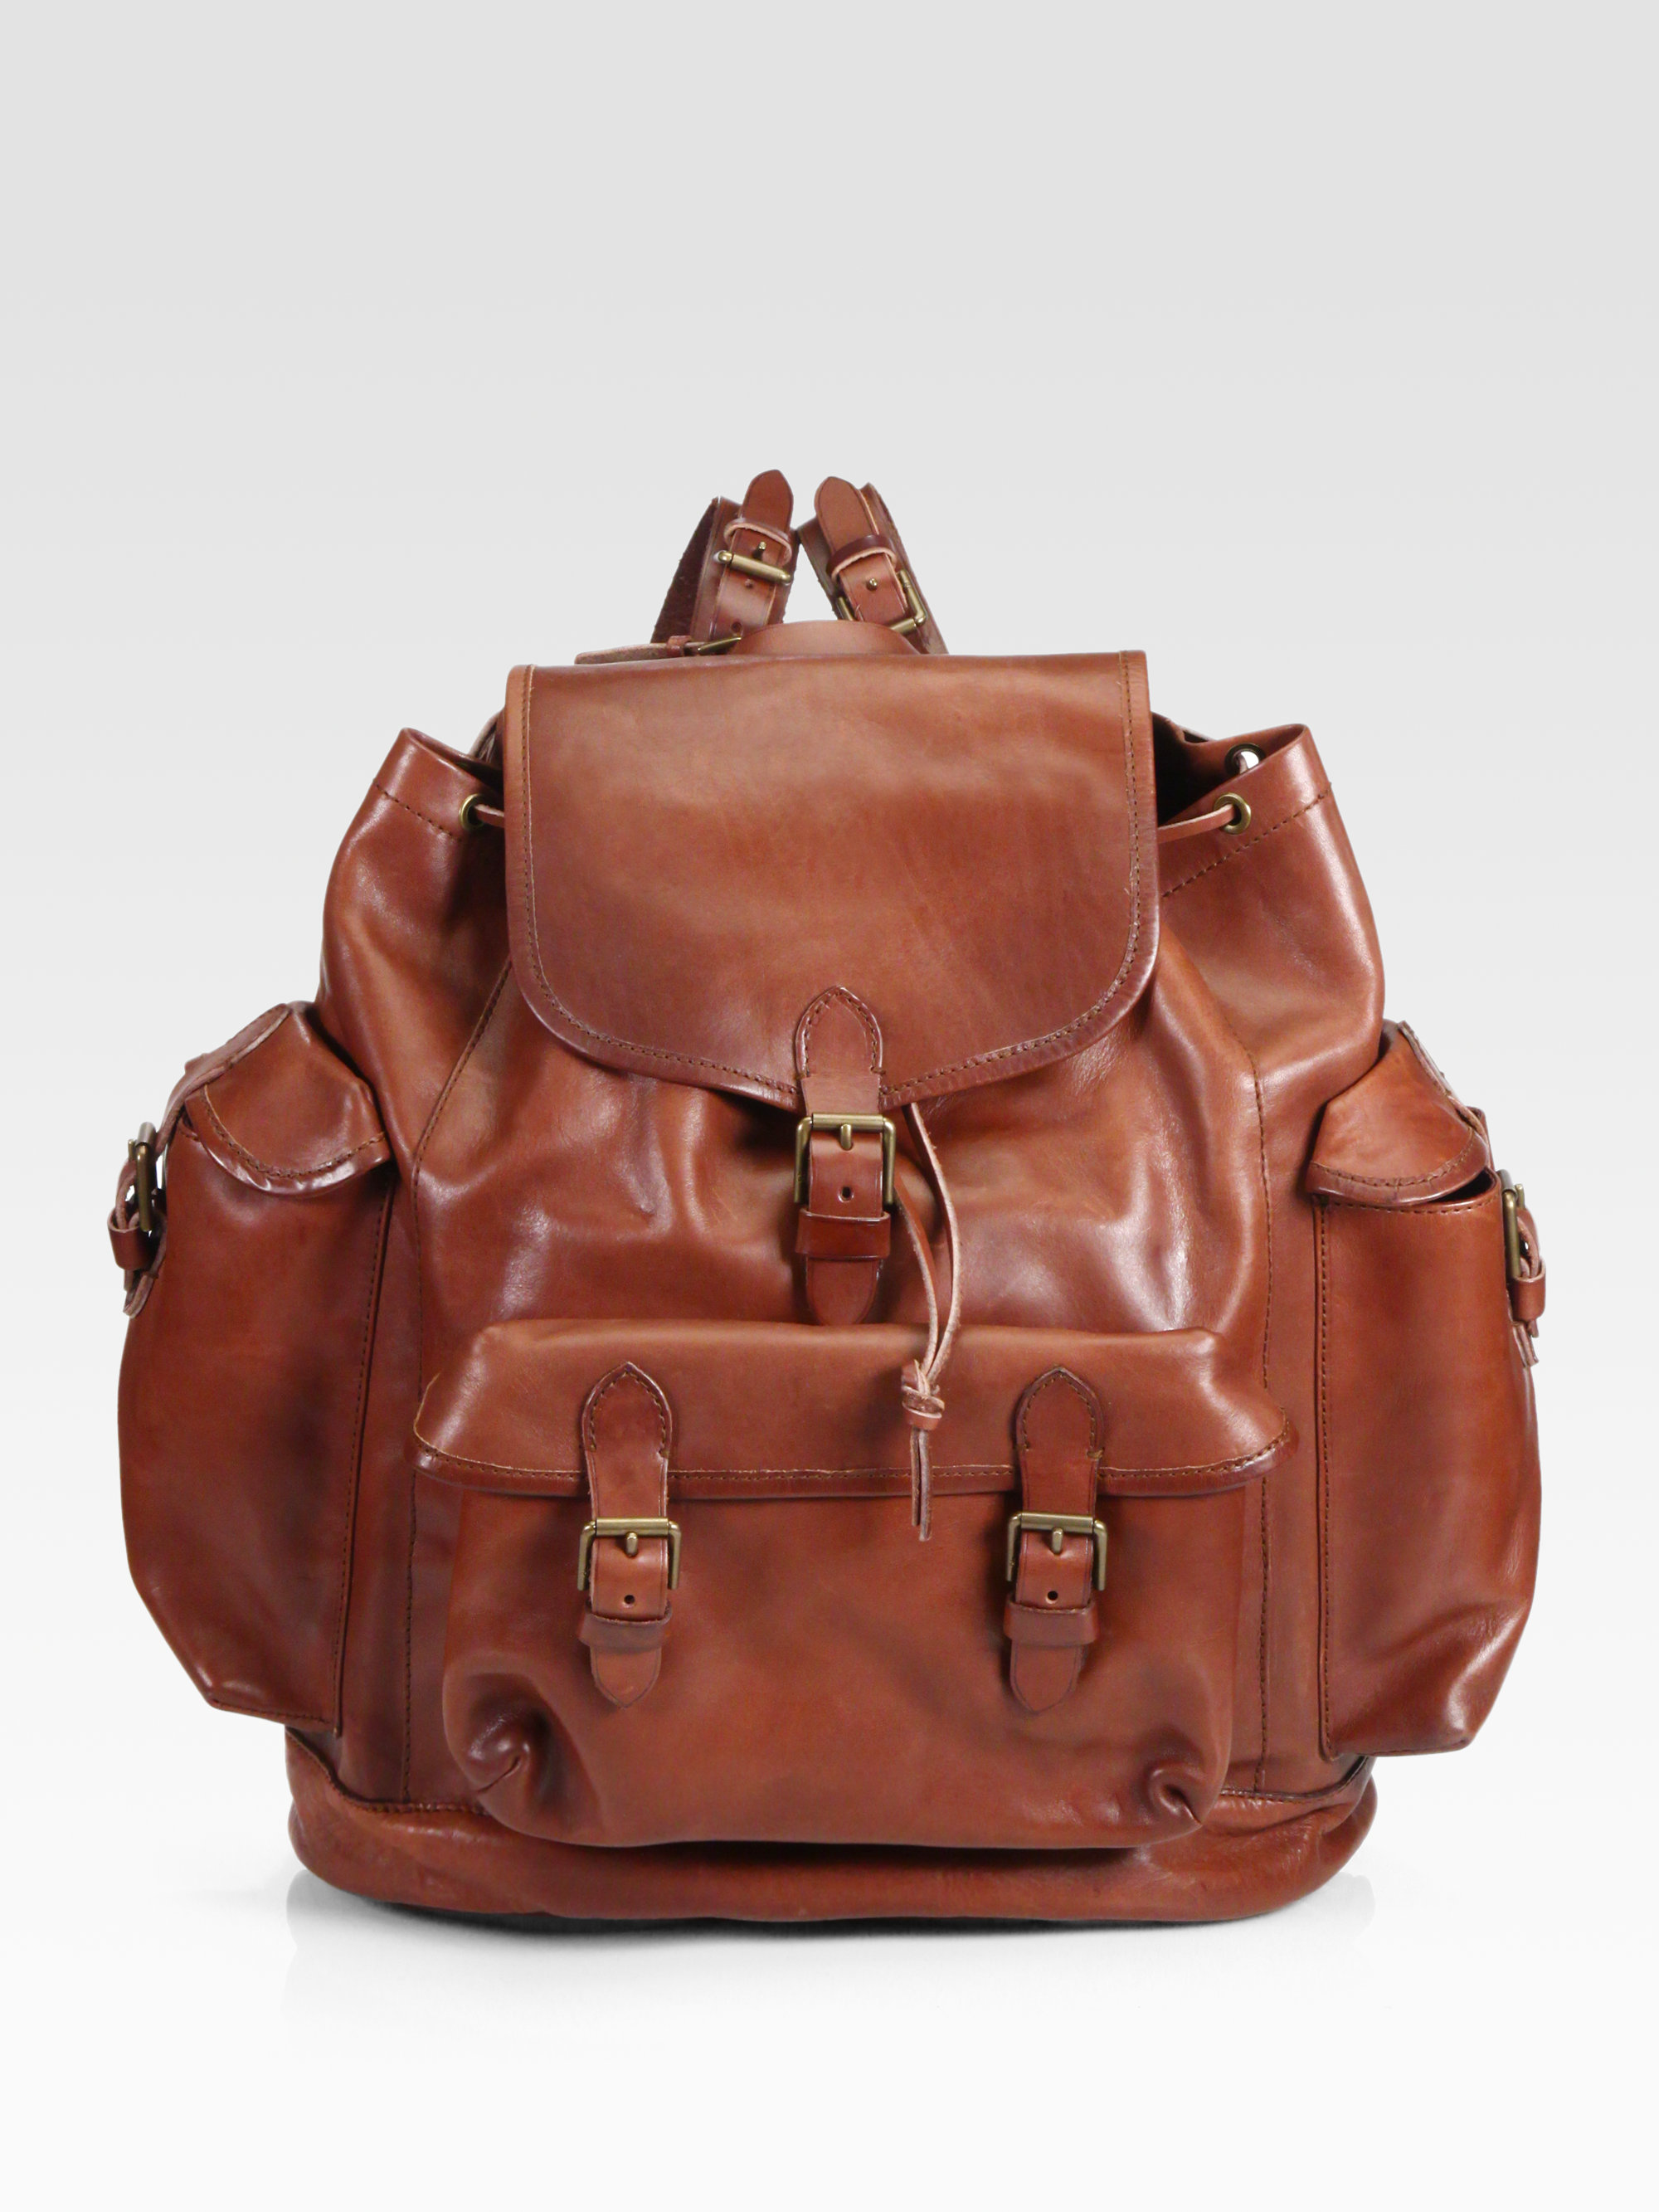 Lyst - Polo Ralph Lauren Leather Backpack in Brown for Men 60dc6712f890c